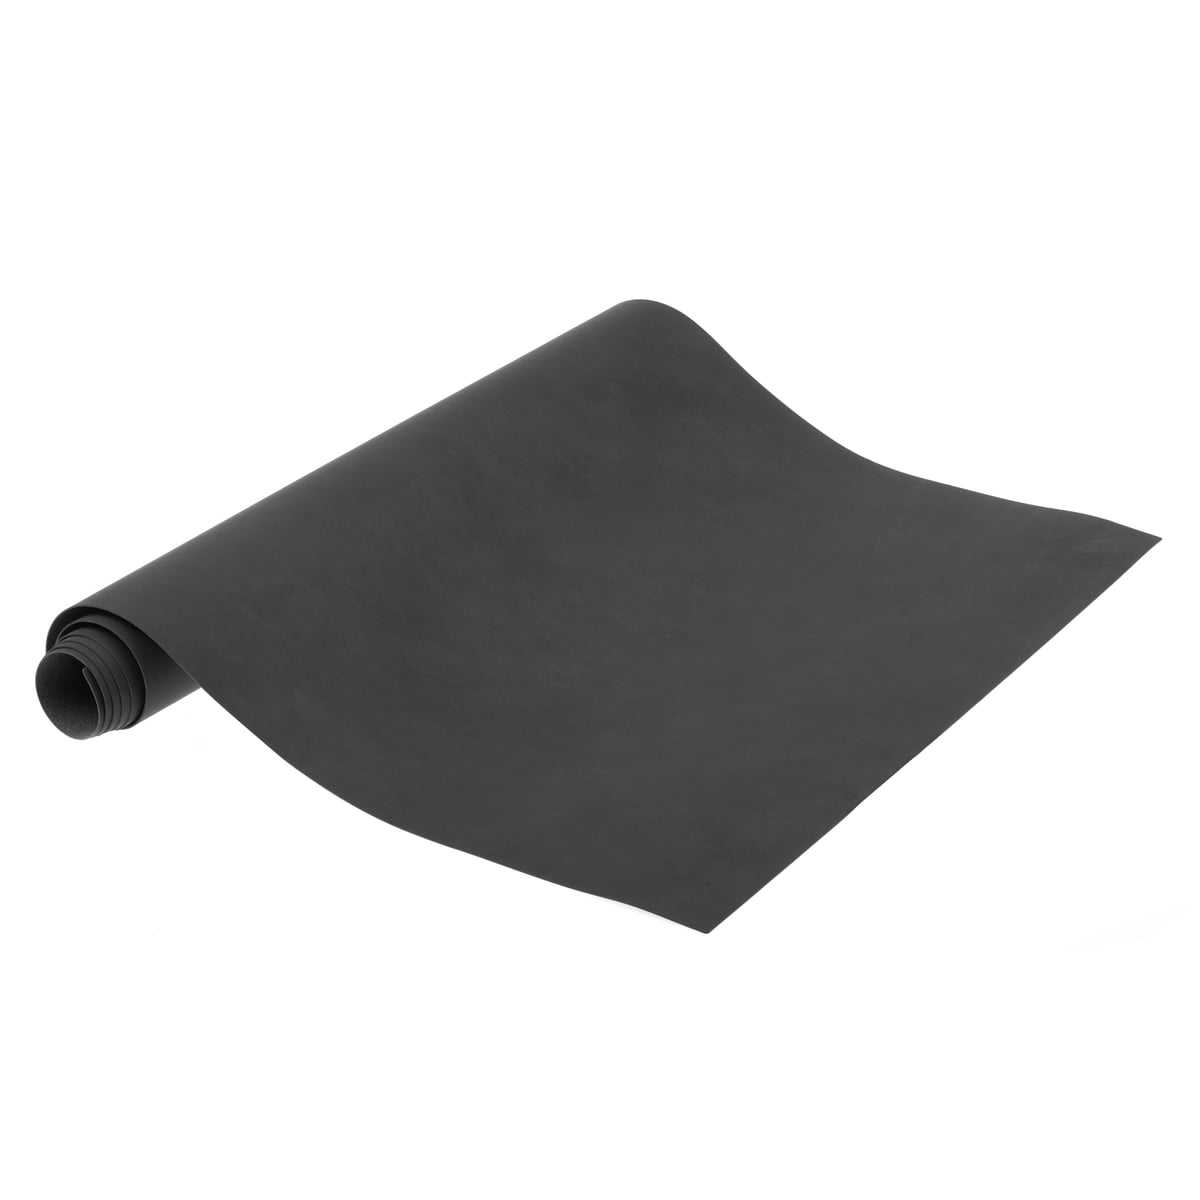 Table Runner M 40 X 140 Cm By LindDNA In Nupo Anthracite